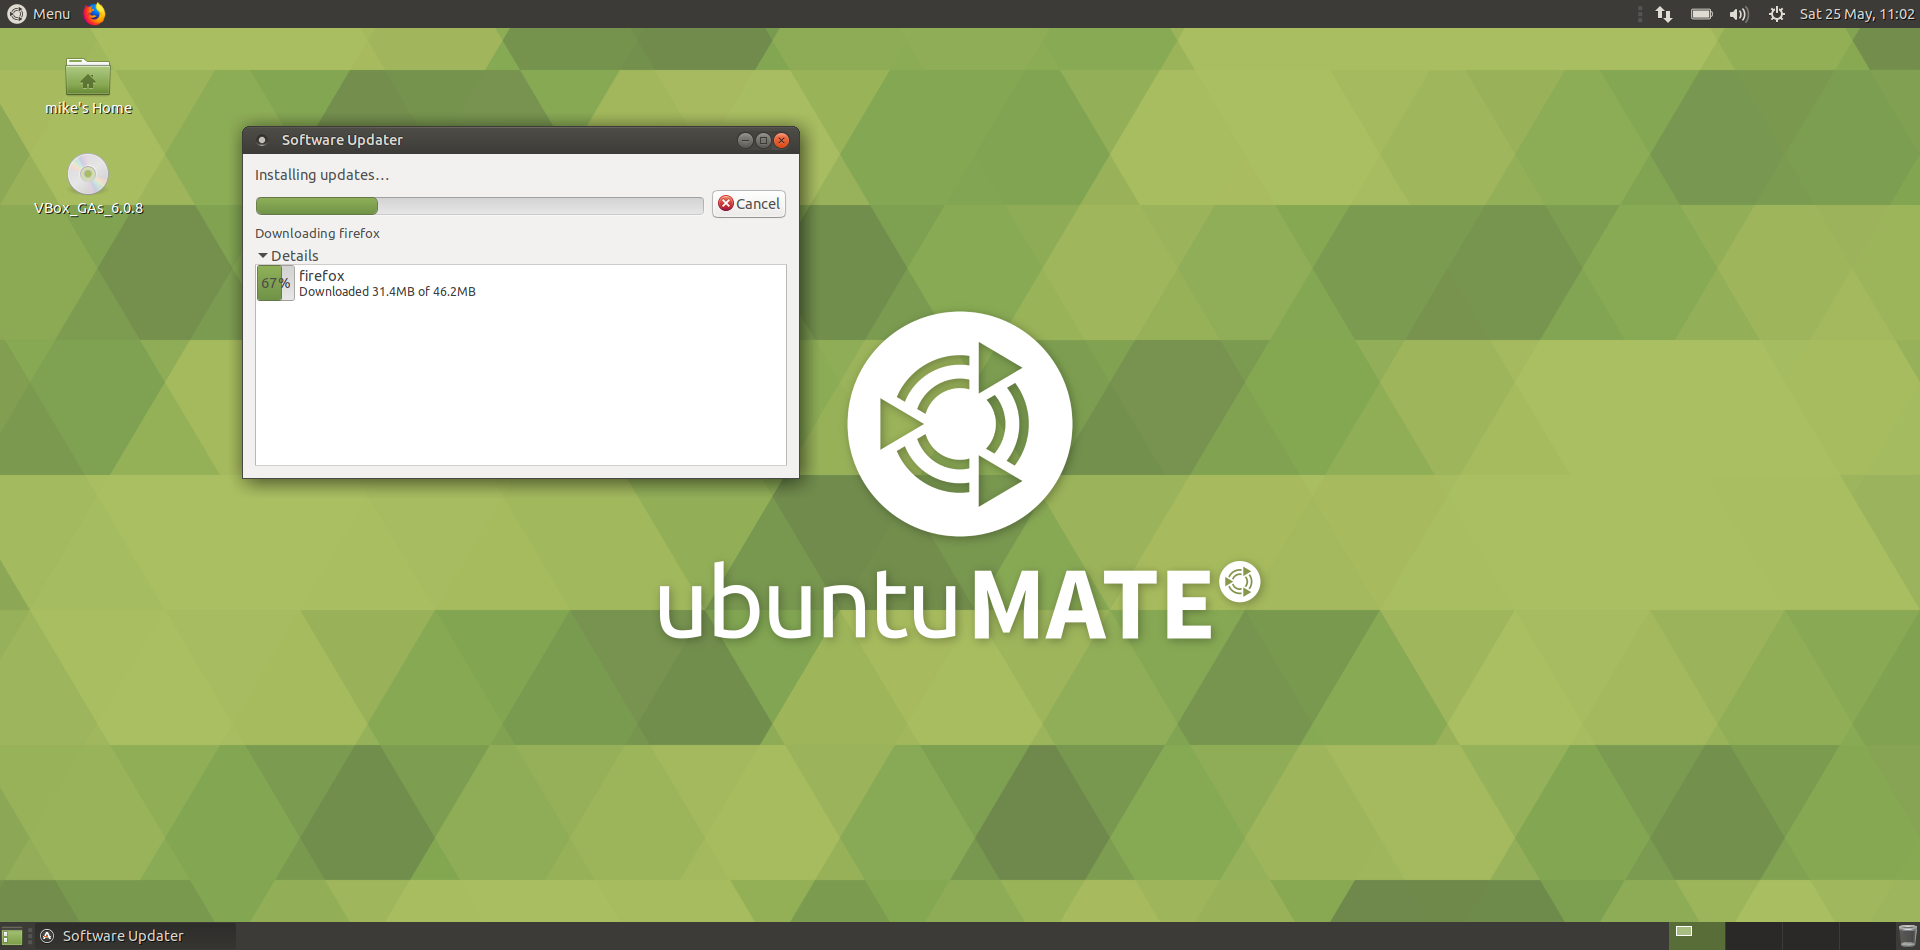 ubuntu mate - 2 - software updater